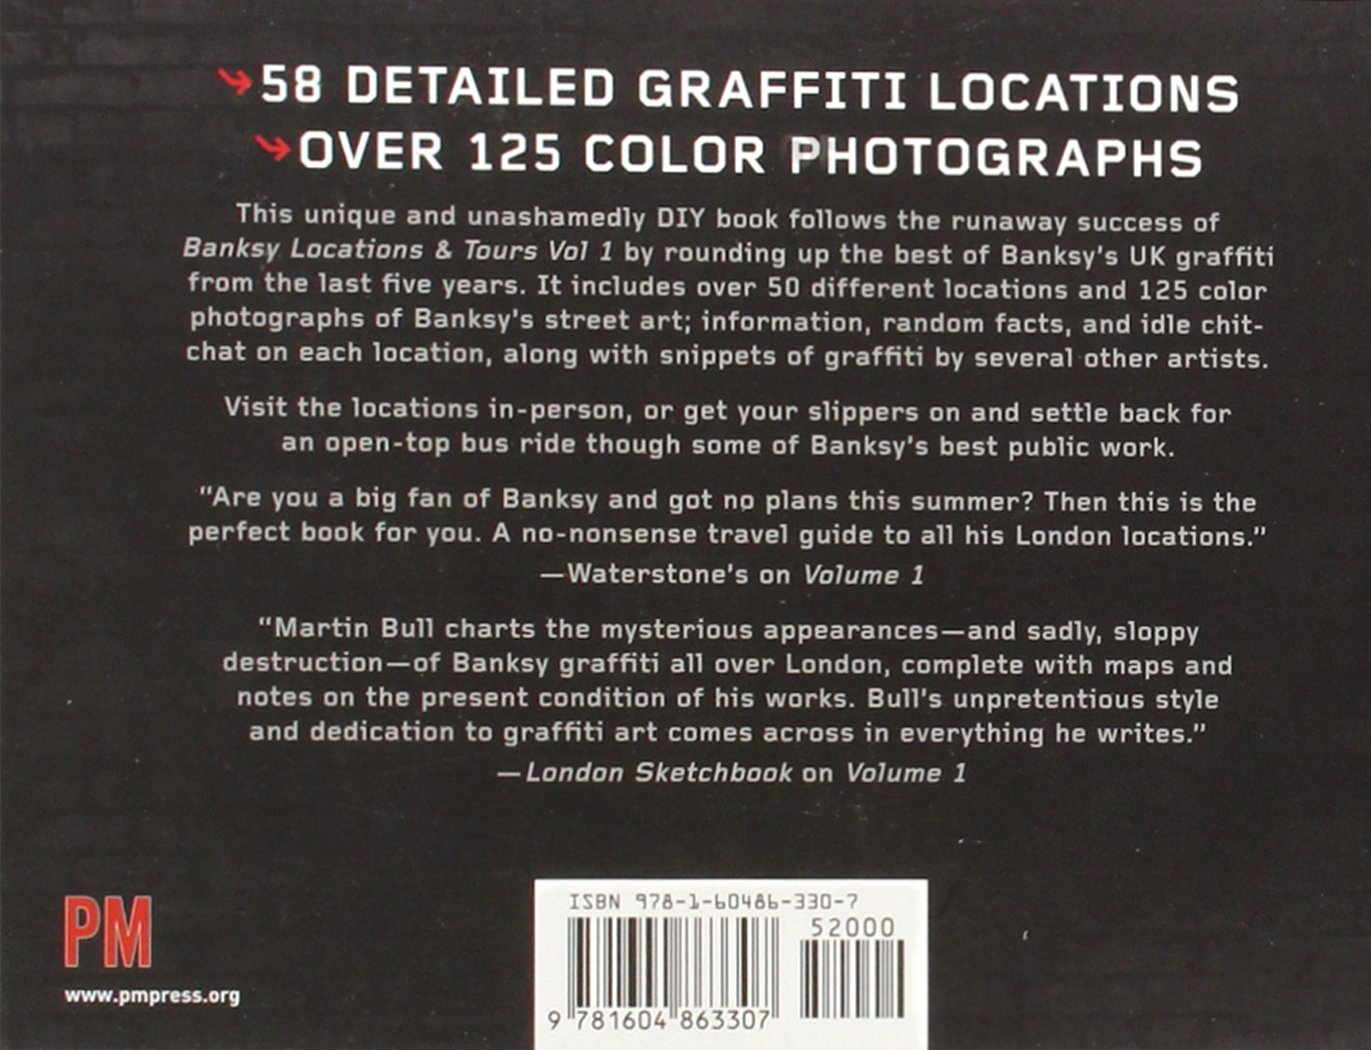 Banksy locations tours volume 2 a collection of graffiti locations and photographs from around the uk martin bull 9781604863307 amazon com books